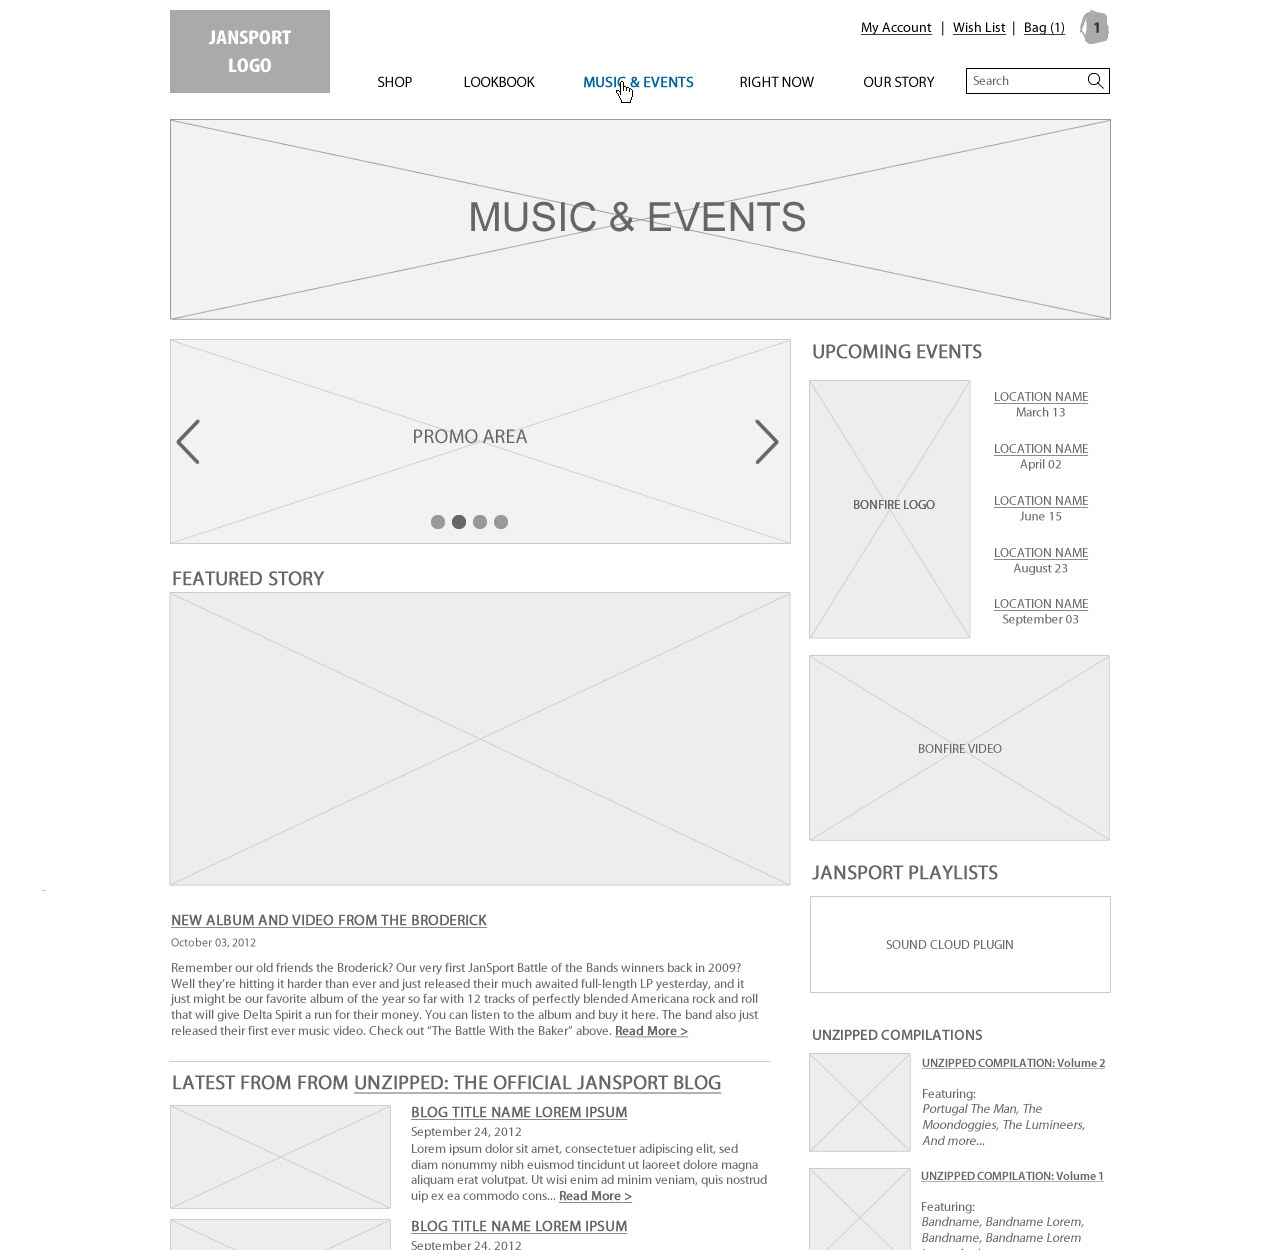 MusicAndEvents_20121115_ag.png